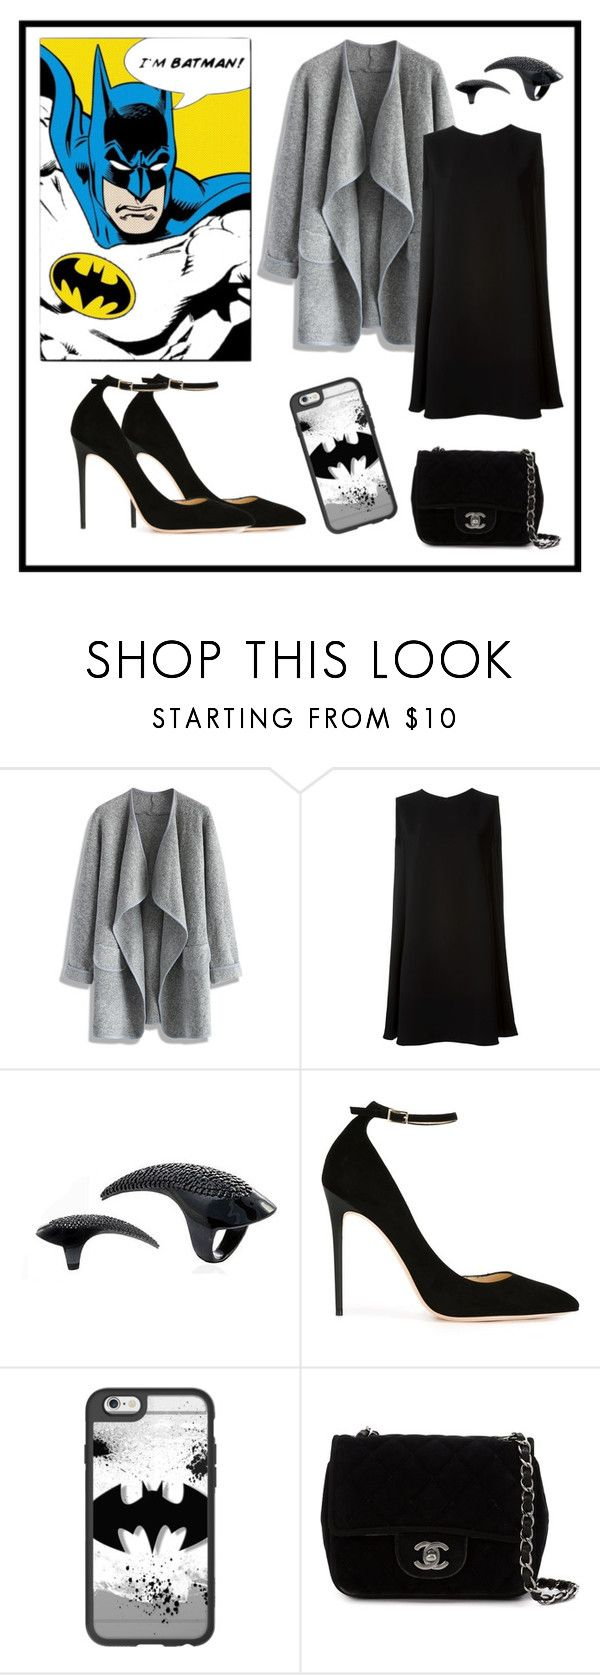 """""""Batman"""" by luis-sato ❤ liked on Polyvore featuring Chicwish, McQ by Alexander McQueen, Jimmy Choo, Casetify and Chanel"""